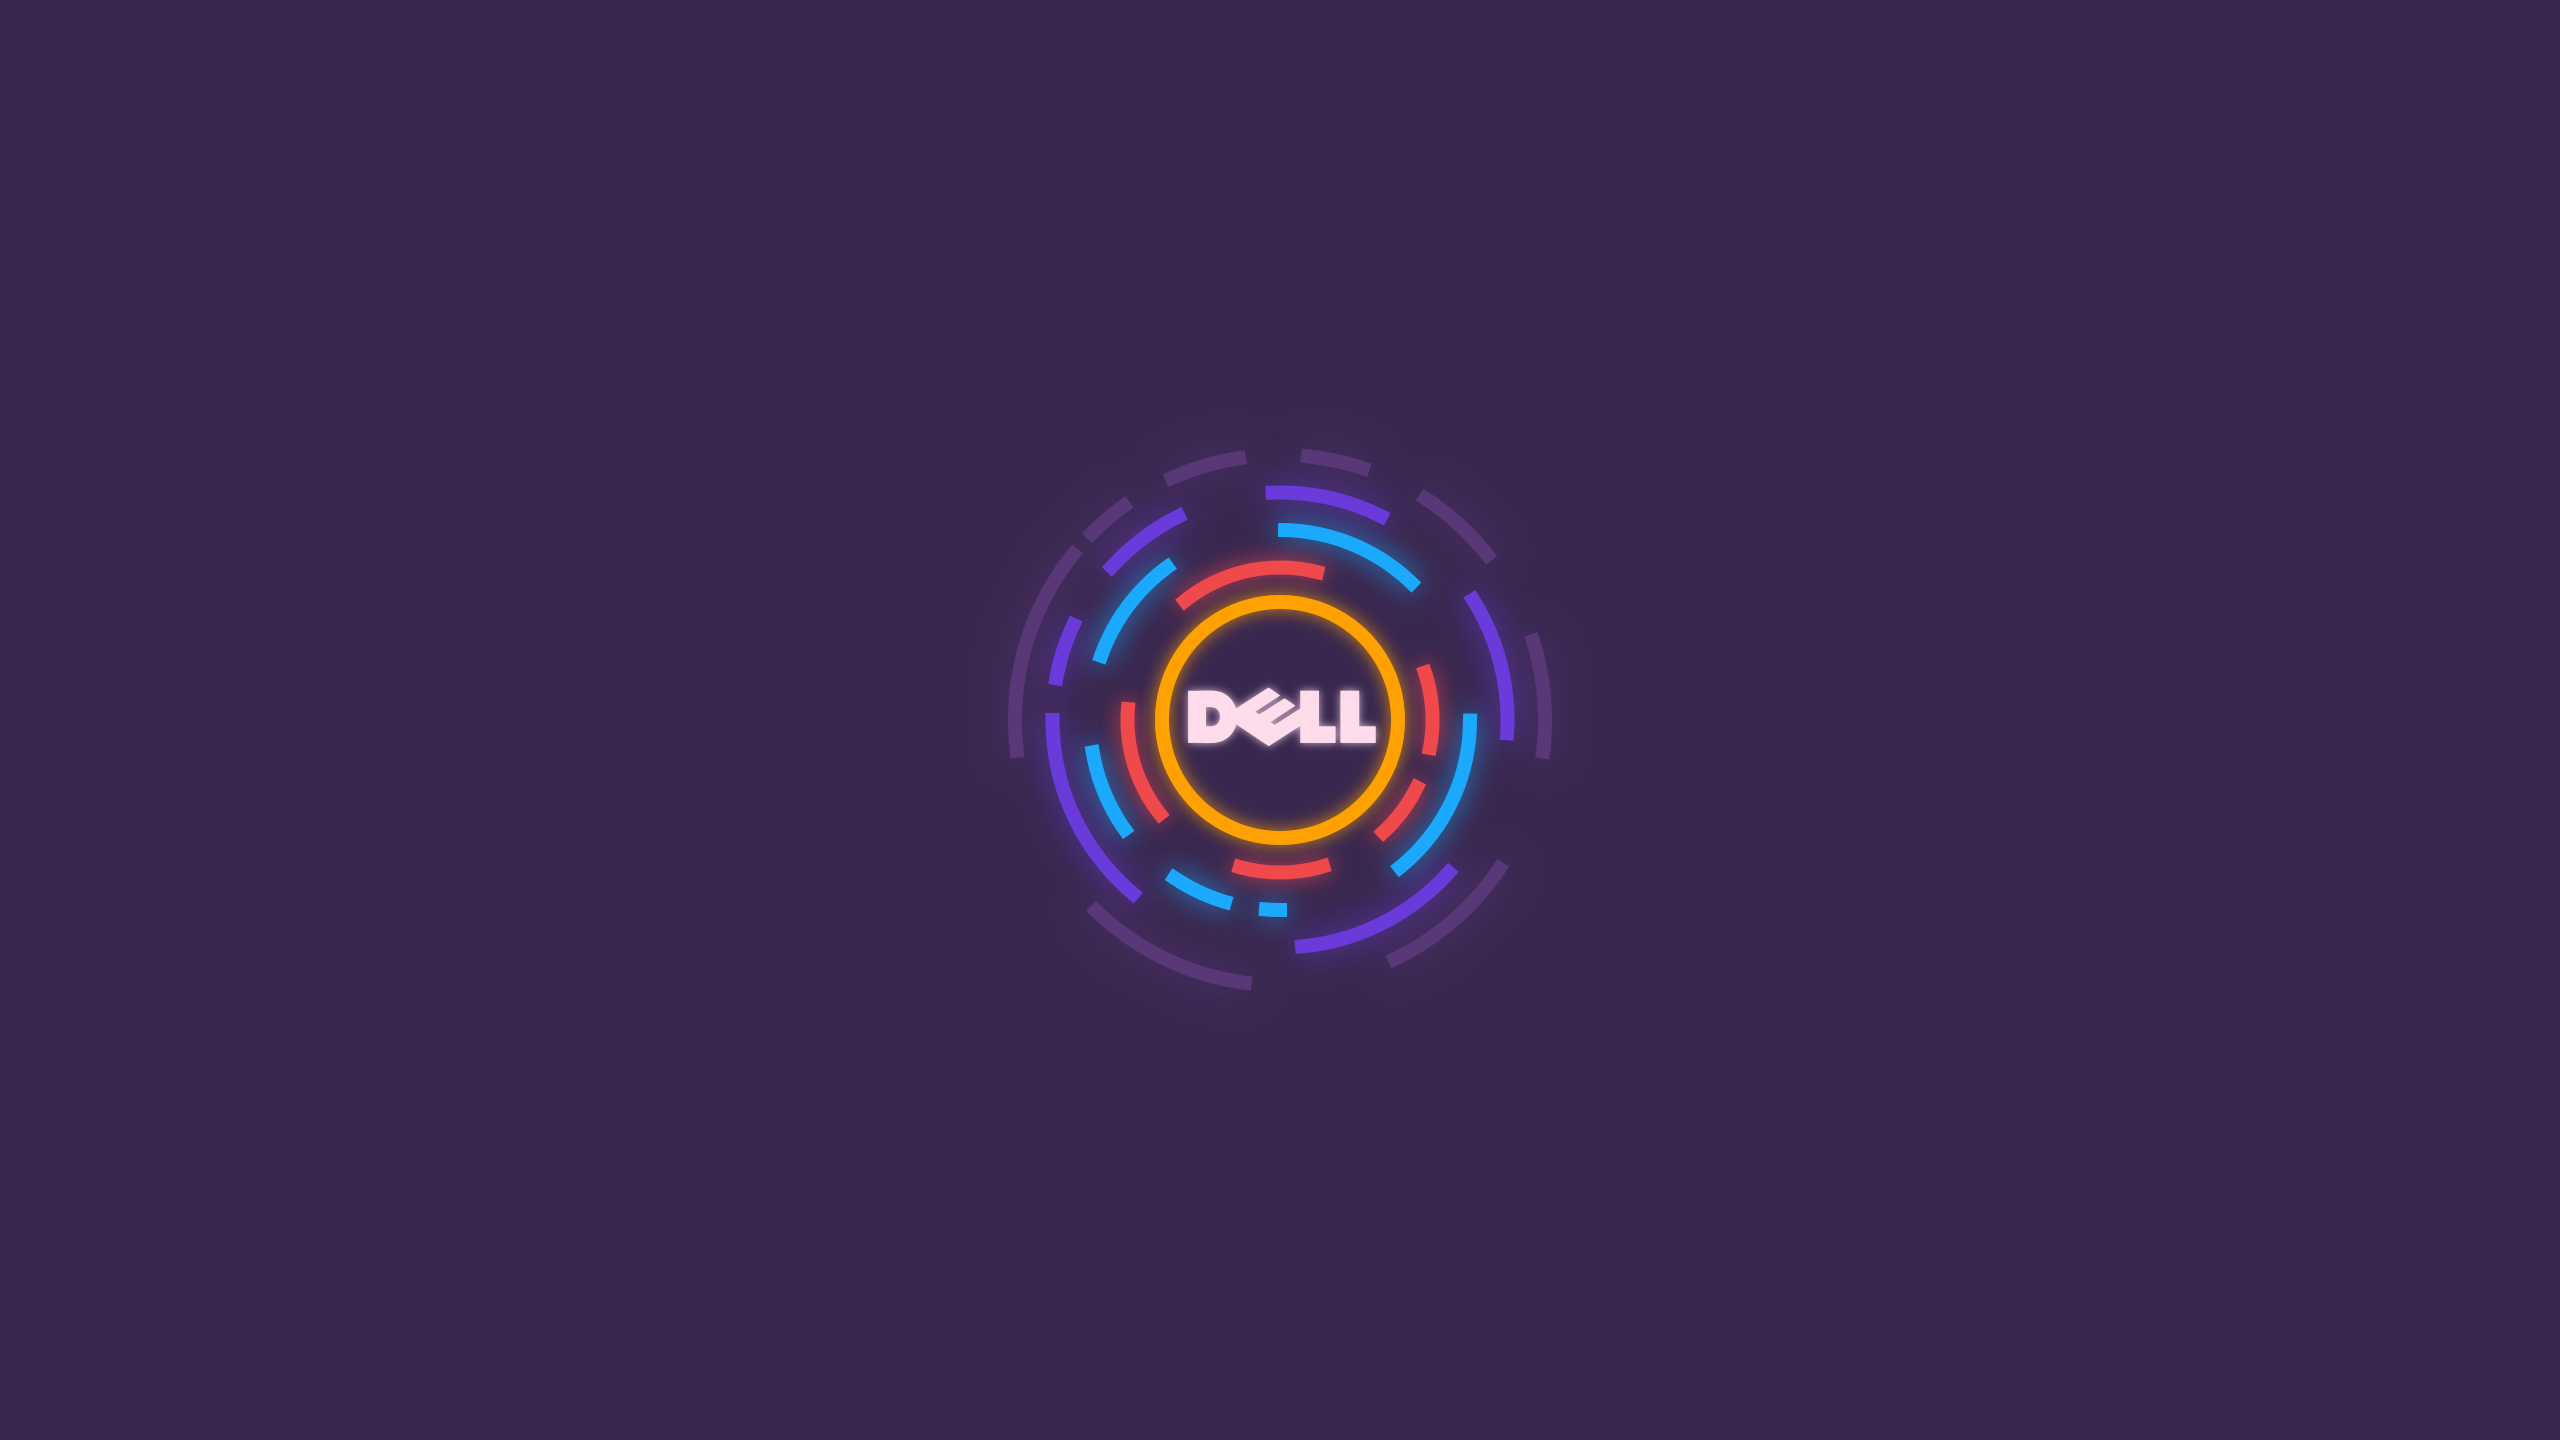 Wallpaper 3d Hd Download For Android Mobile Dell Logo Minimalism Hd Computer 4k Wallpapers Images